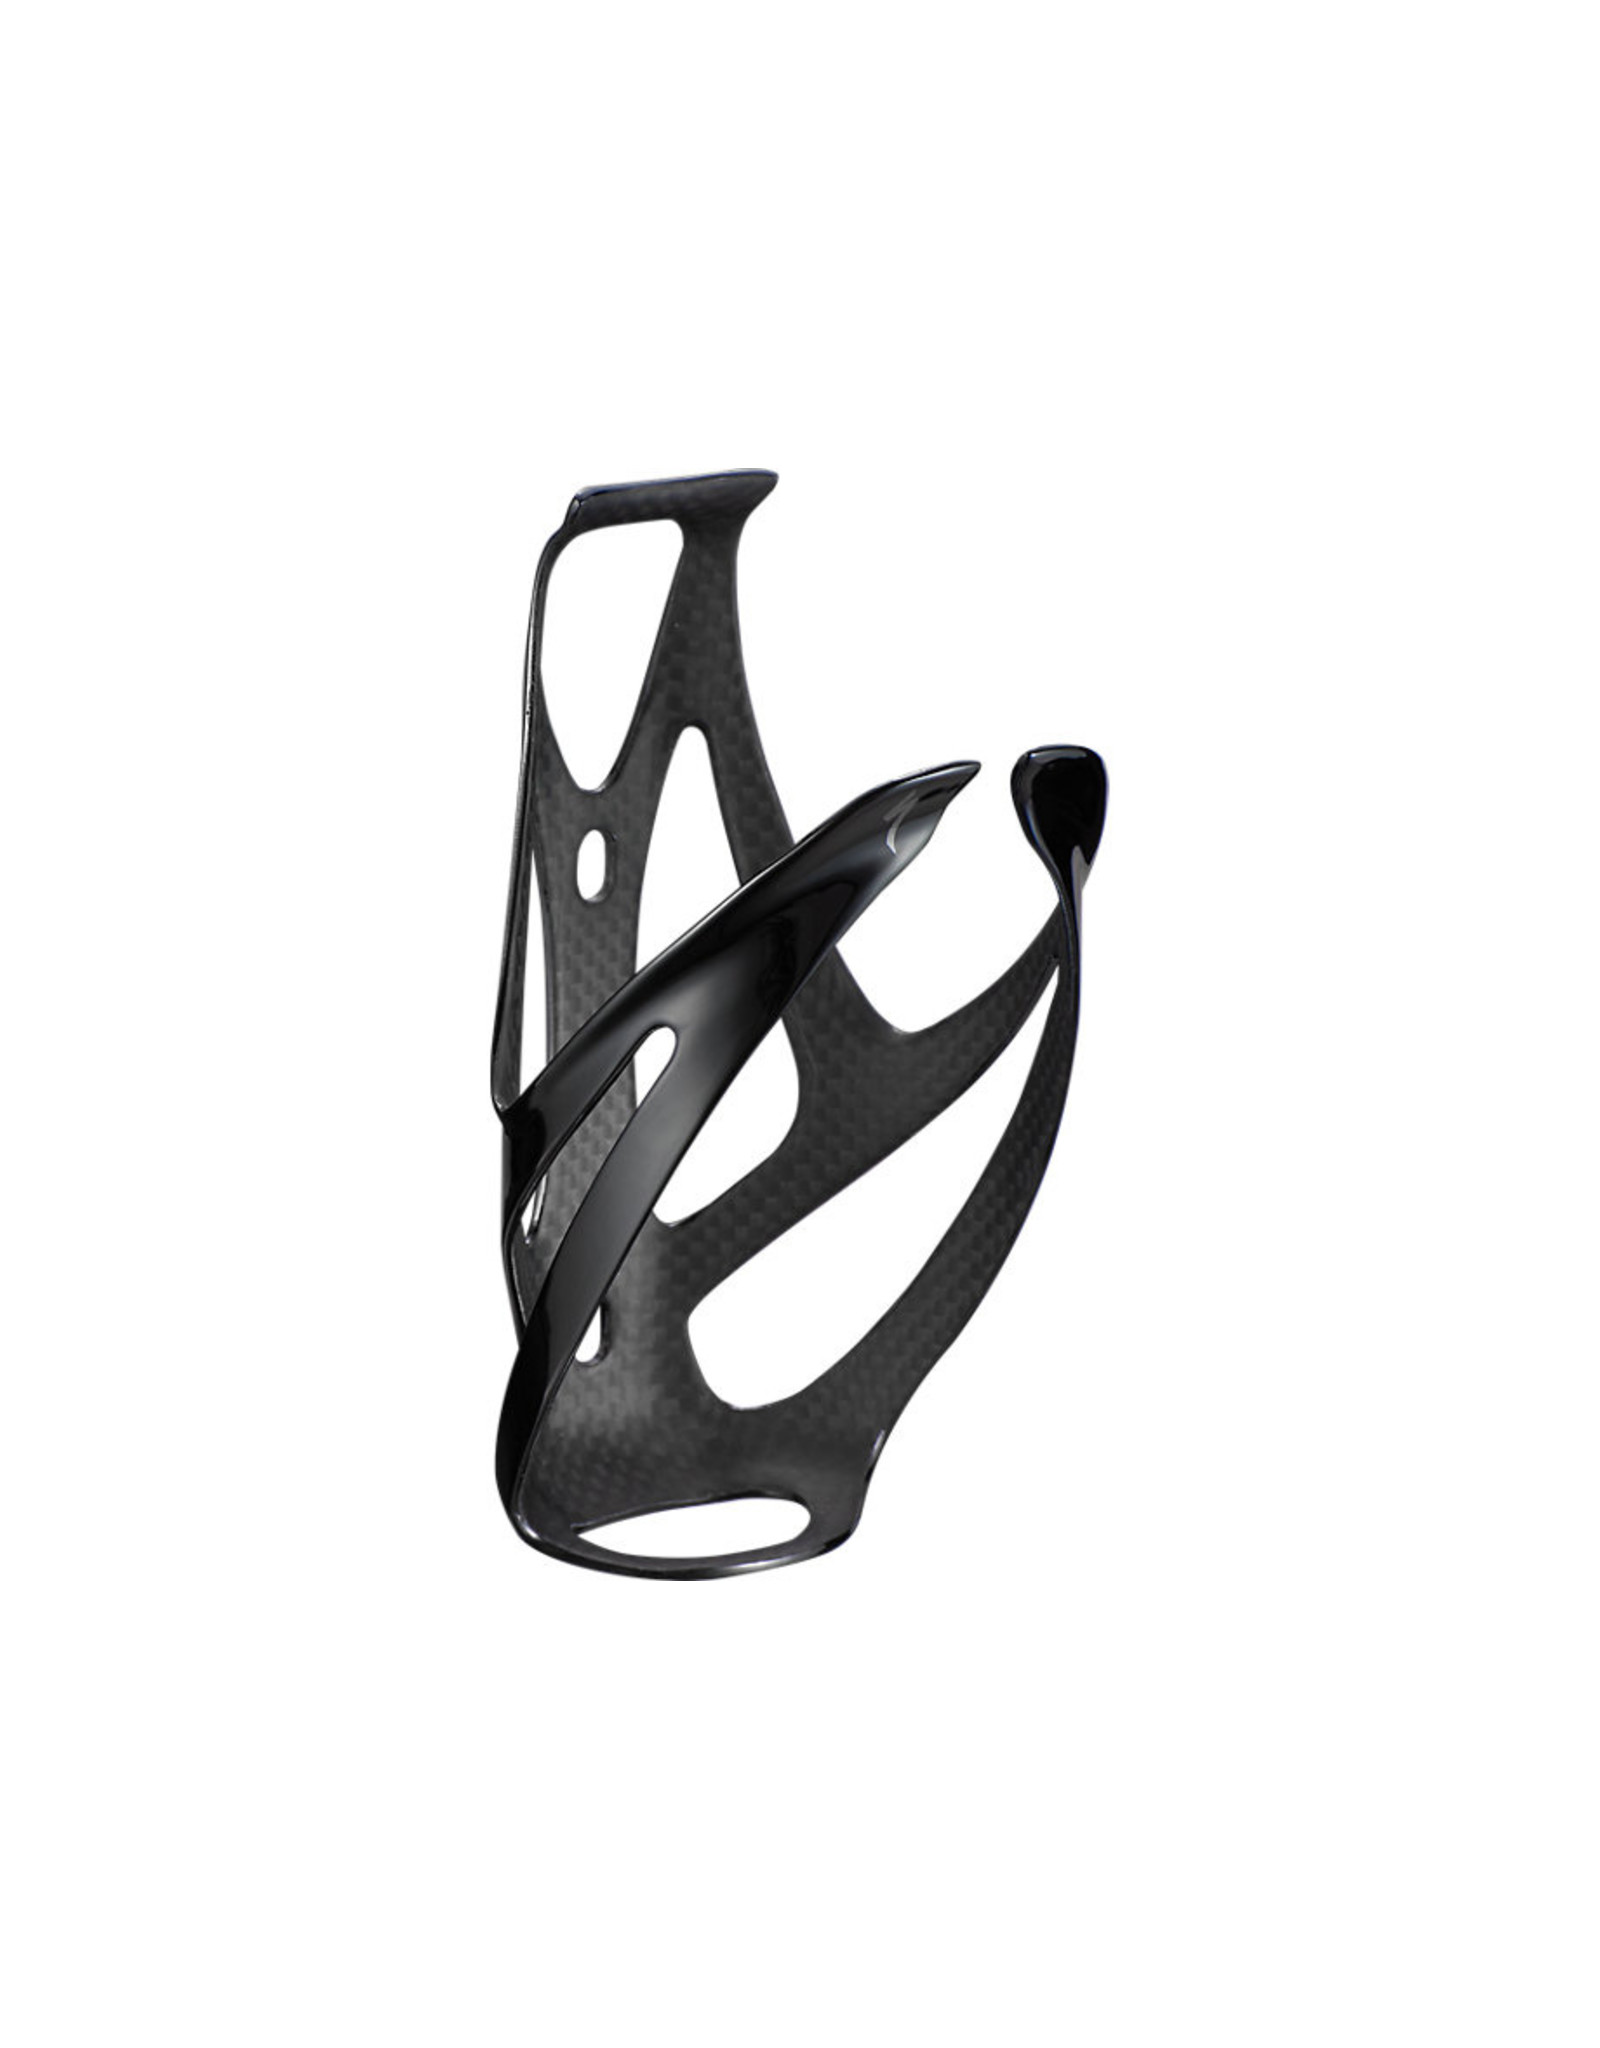 Specialized S-WORKS RIB CAGE III CARBON CARB/GLOSS BLACK